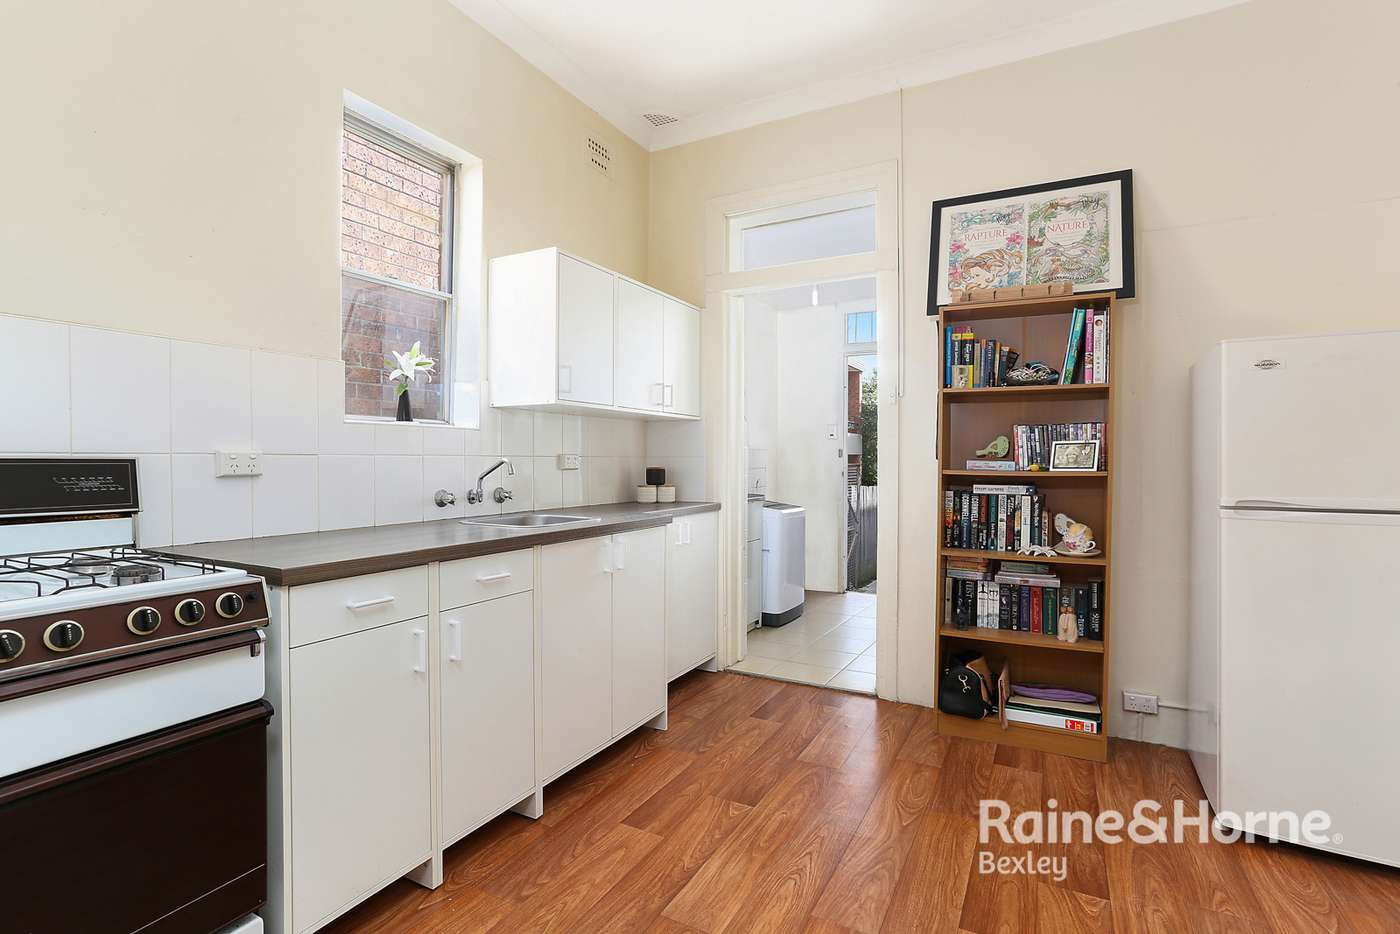 Main view of Homely apartment listing, 2/323 Forest Road, Bexley NSW 2207